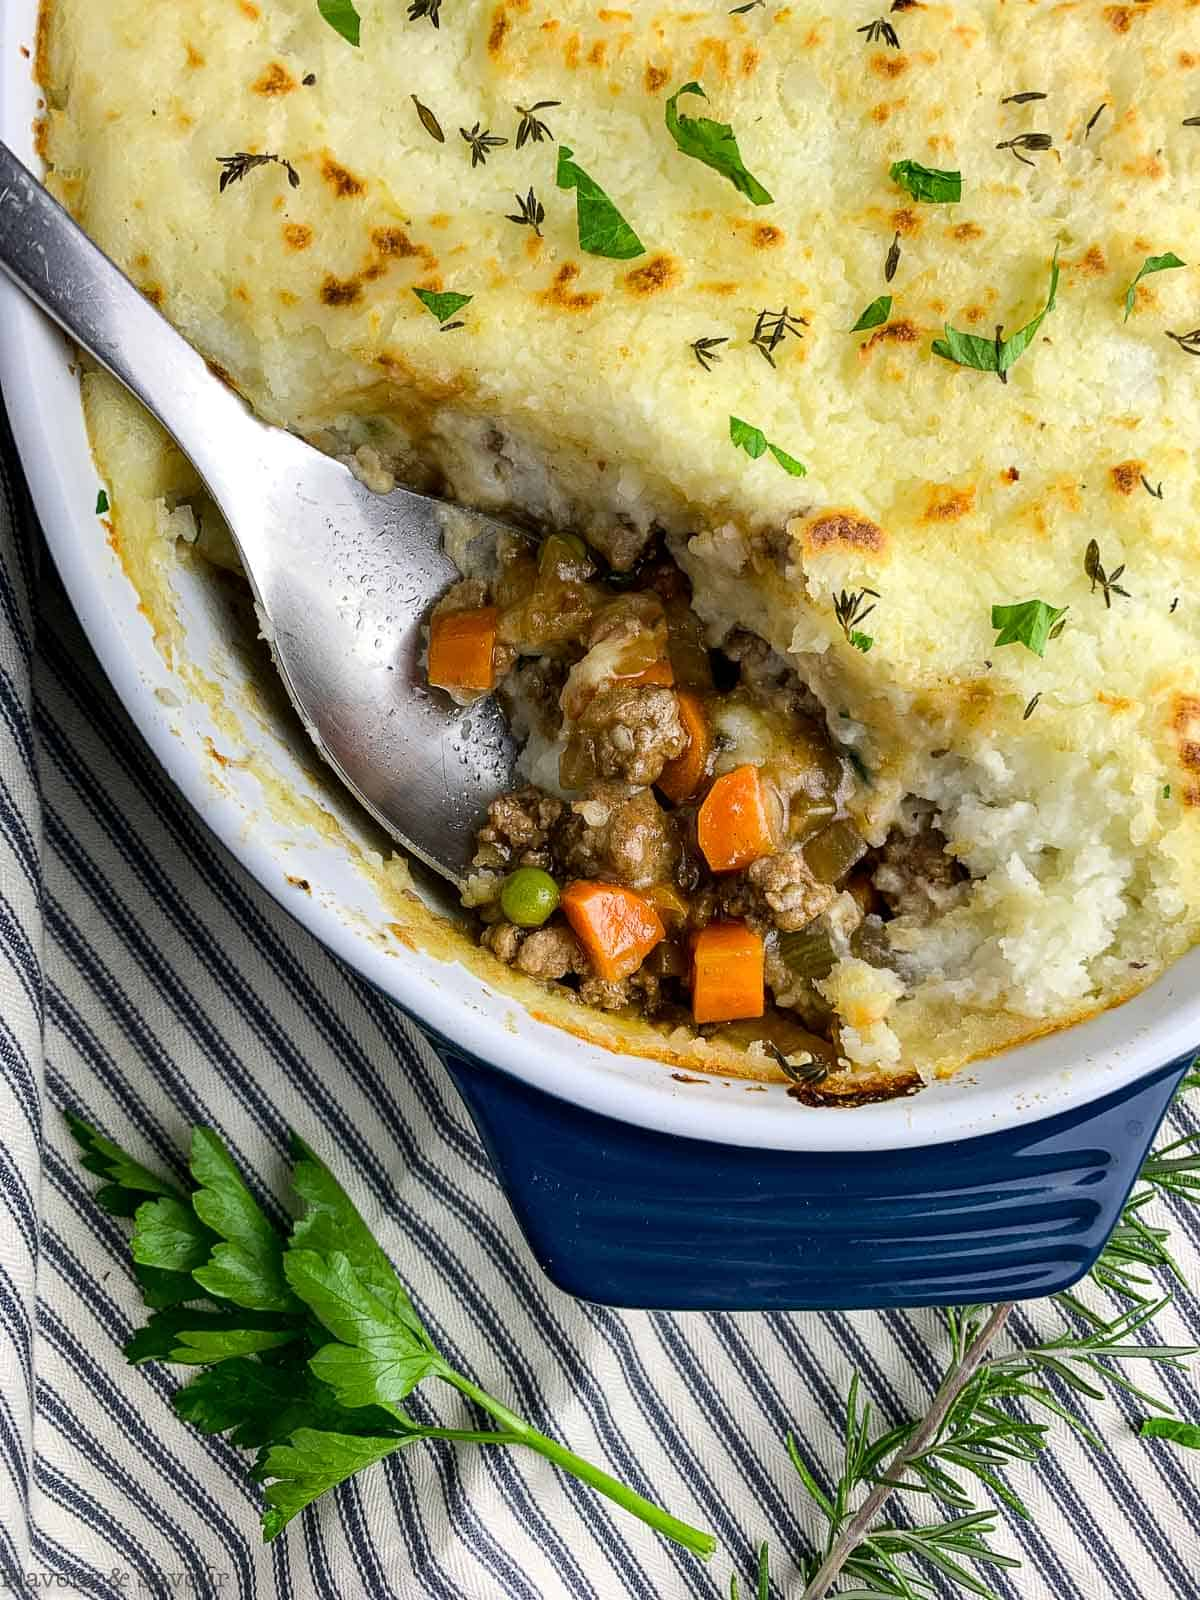 Close up image of the layers of homemade Shepherd's Pie